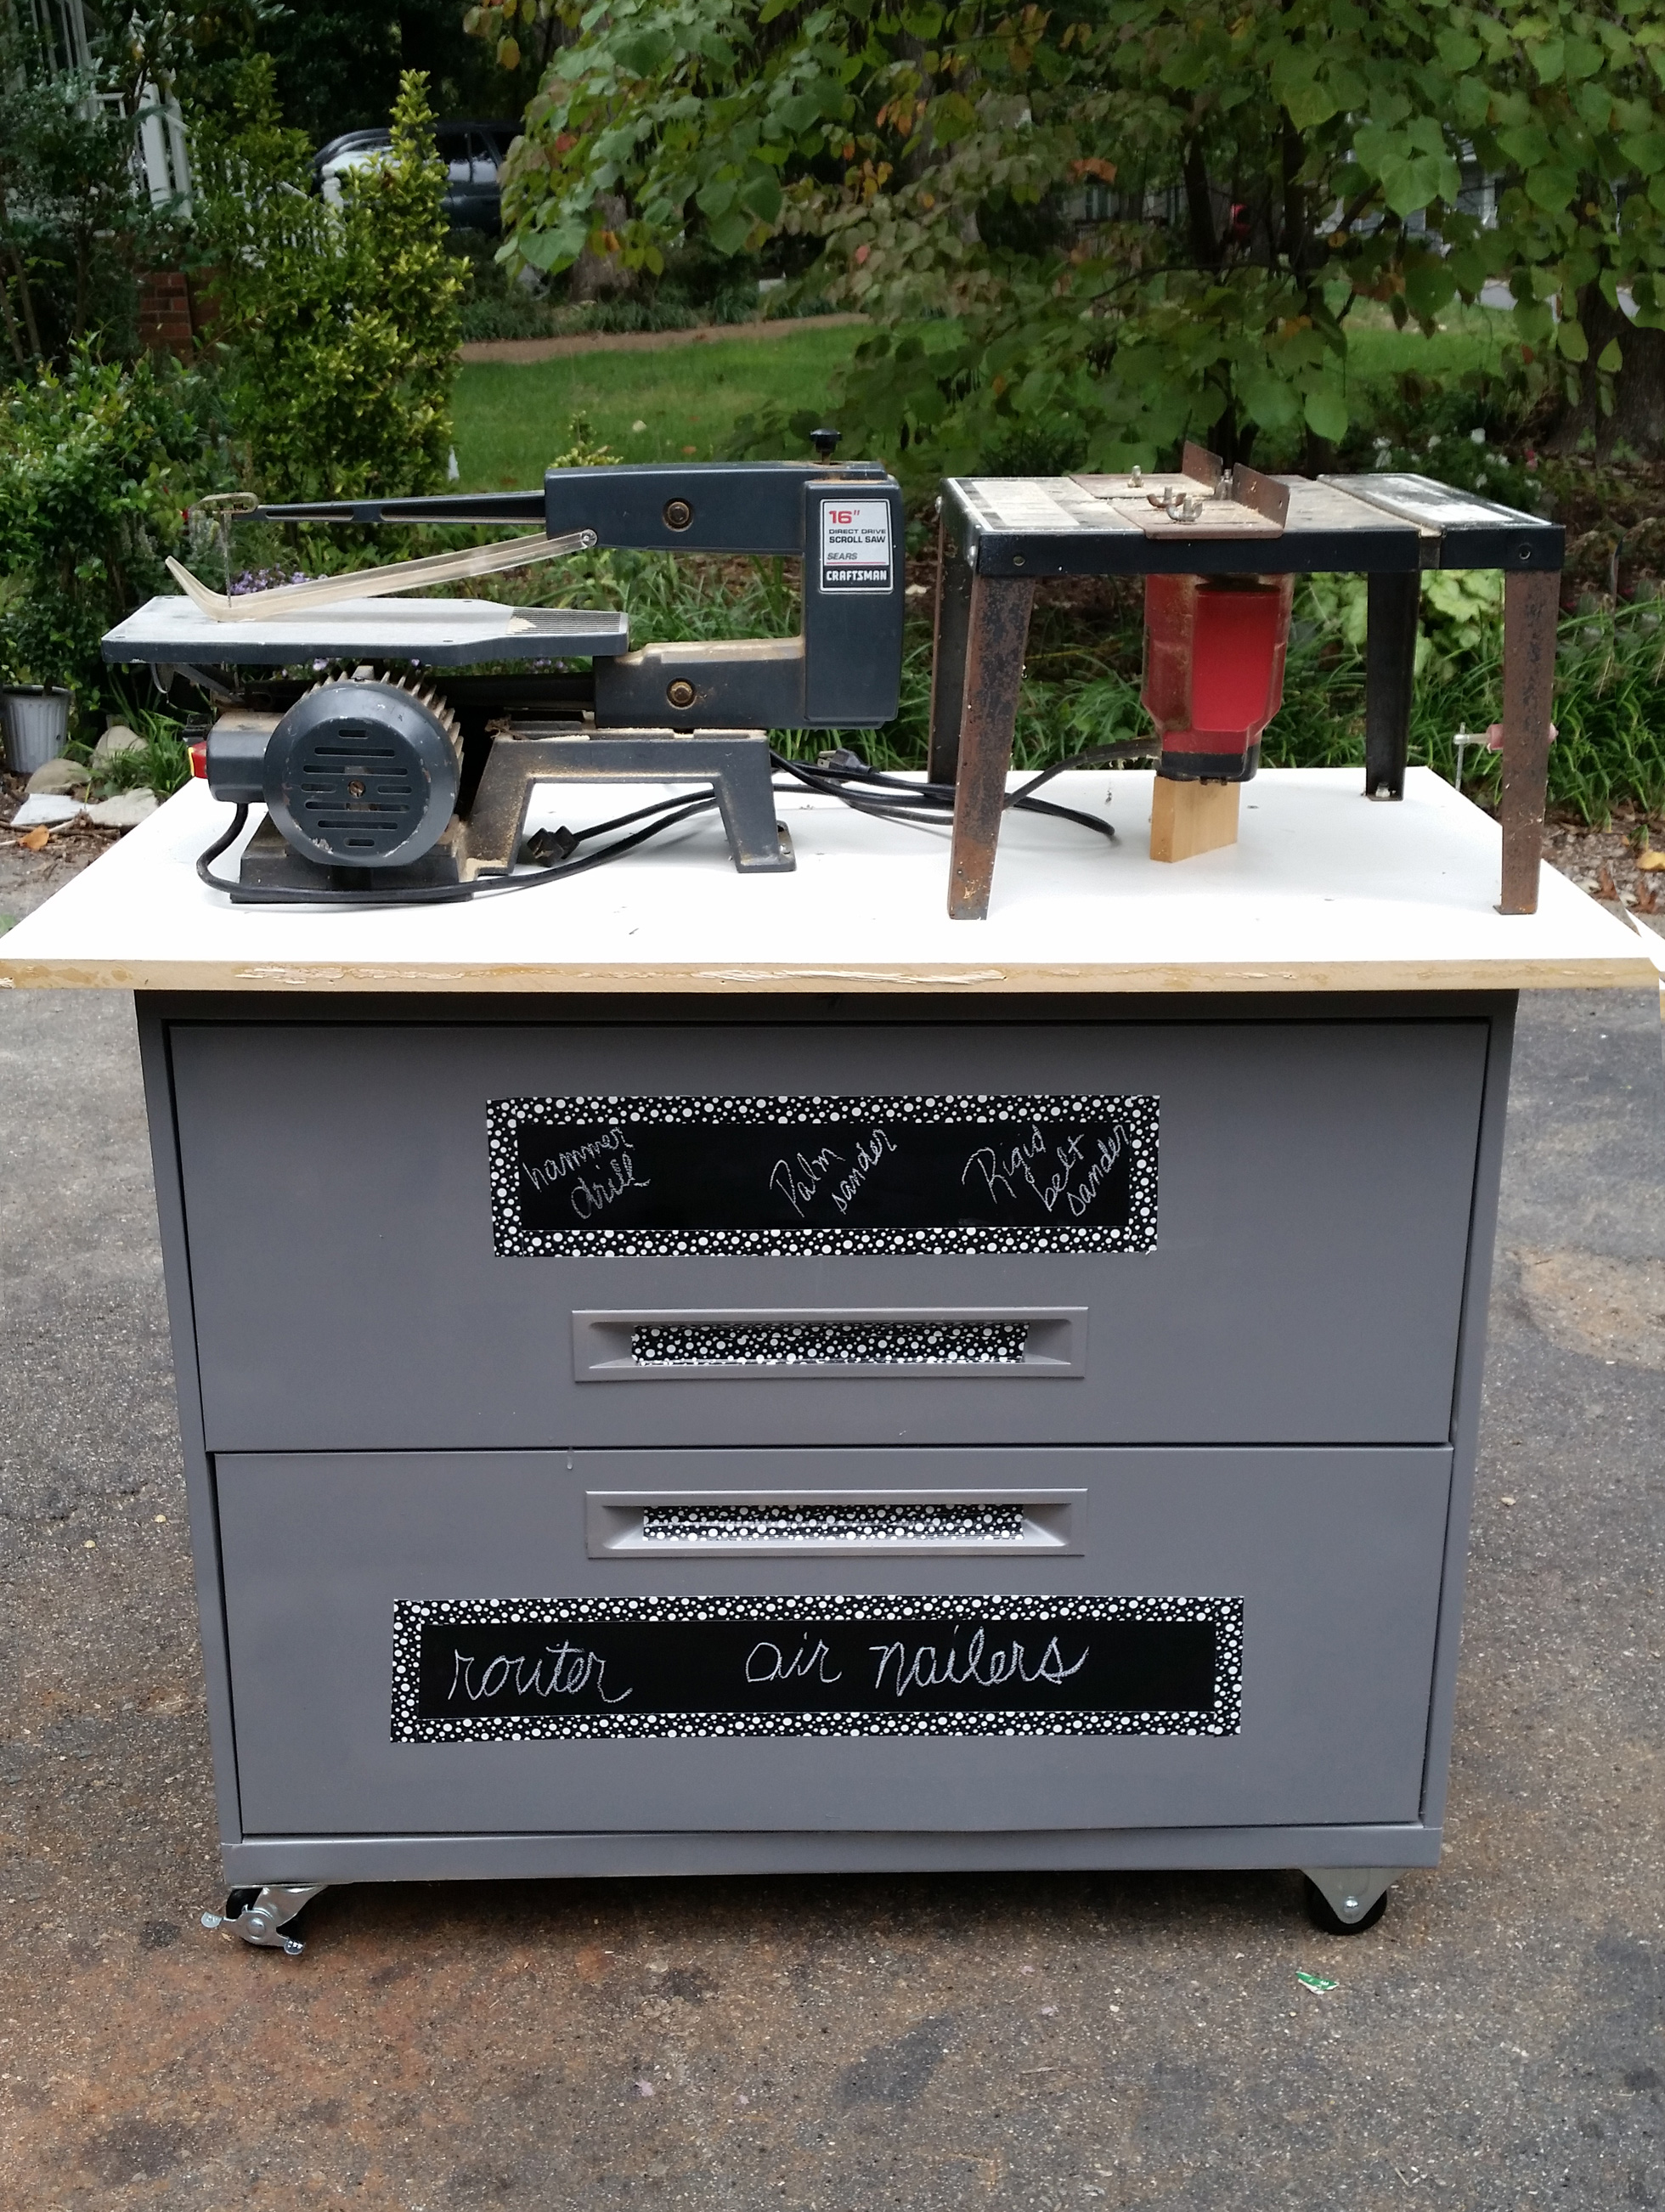 Garage workbench made from a filing cabinet